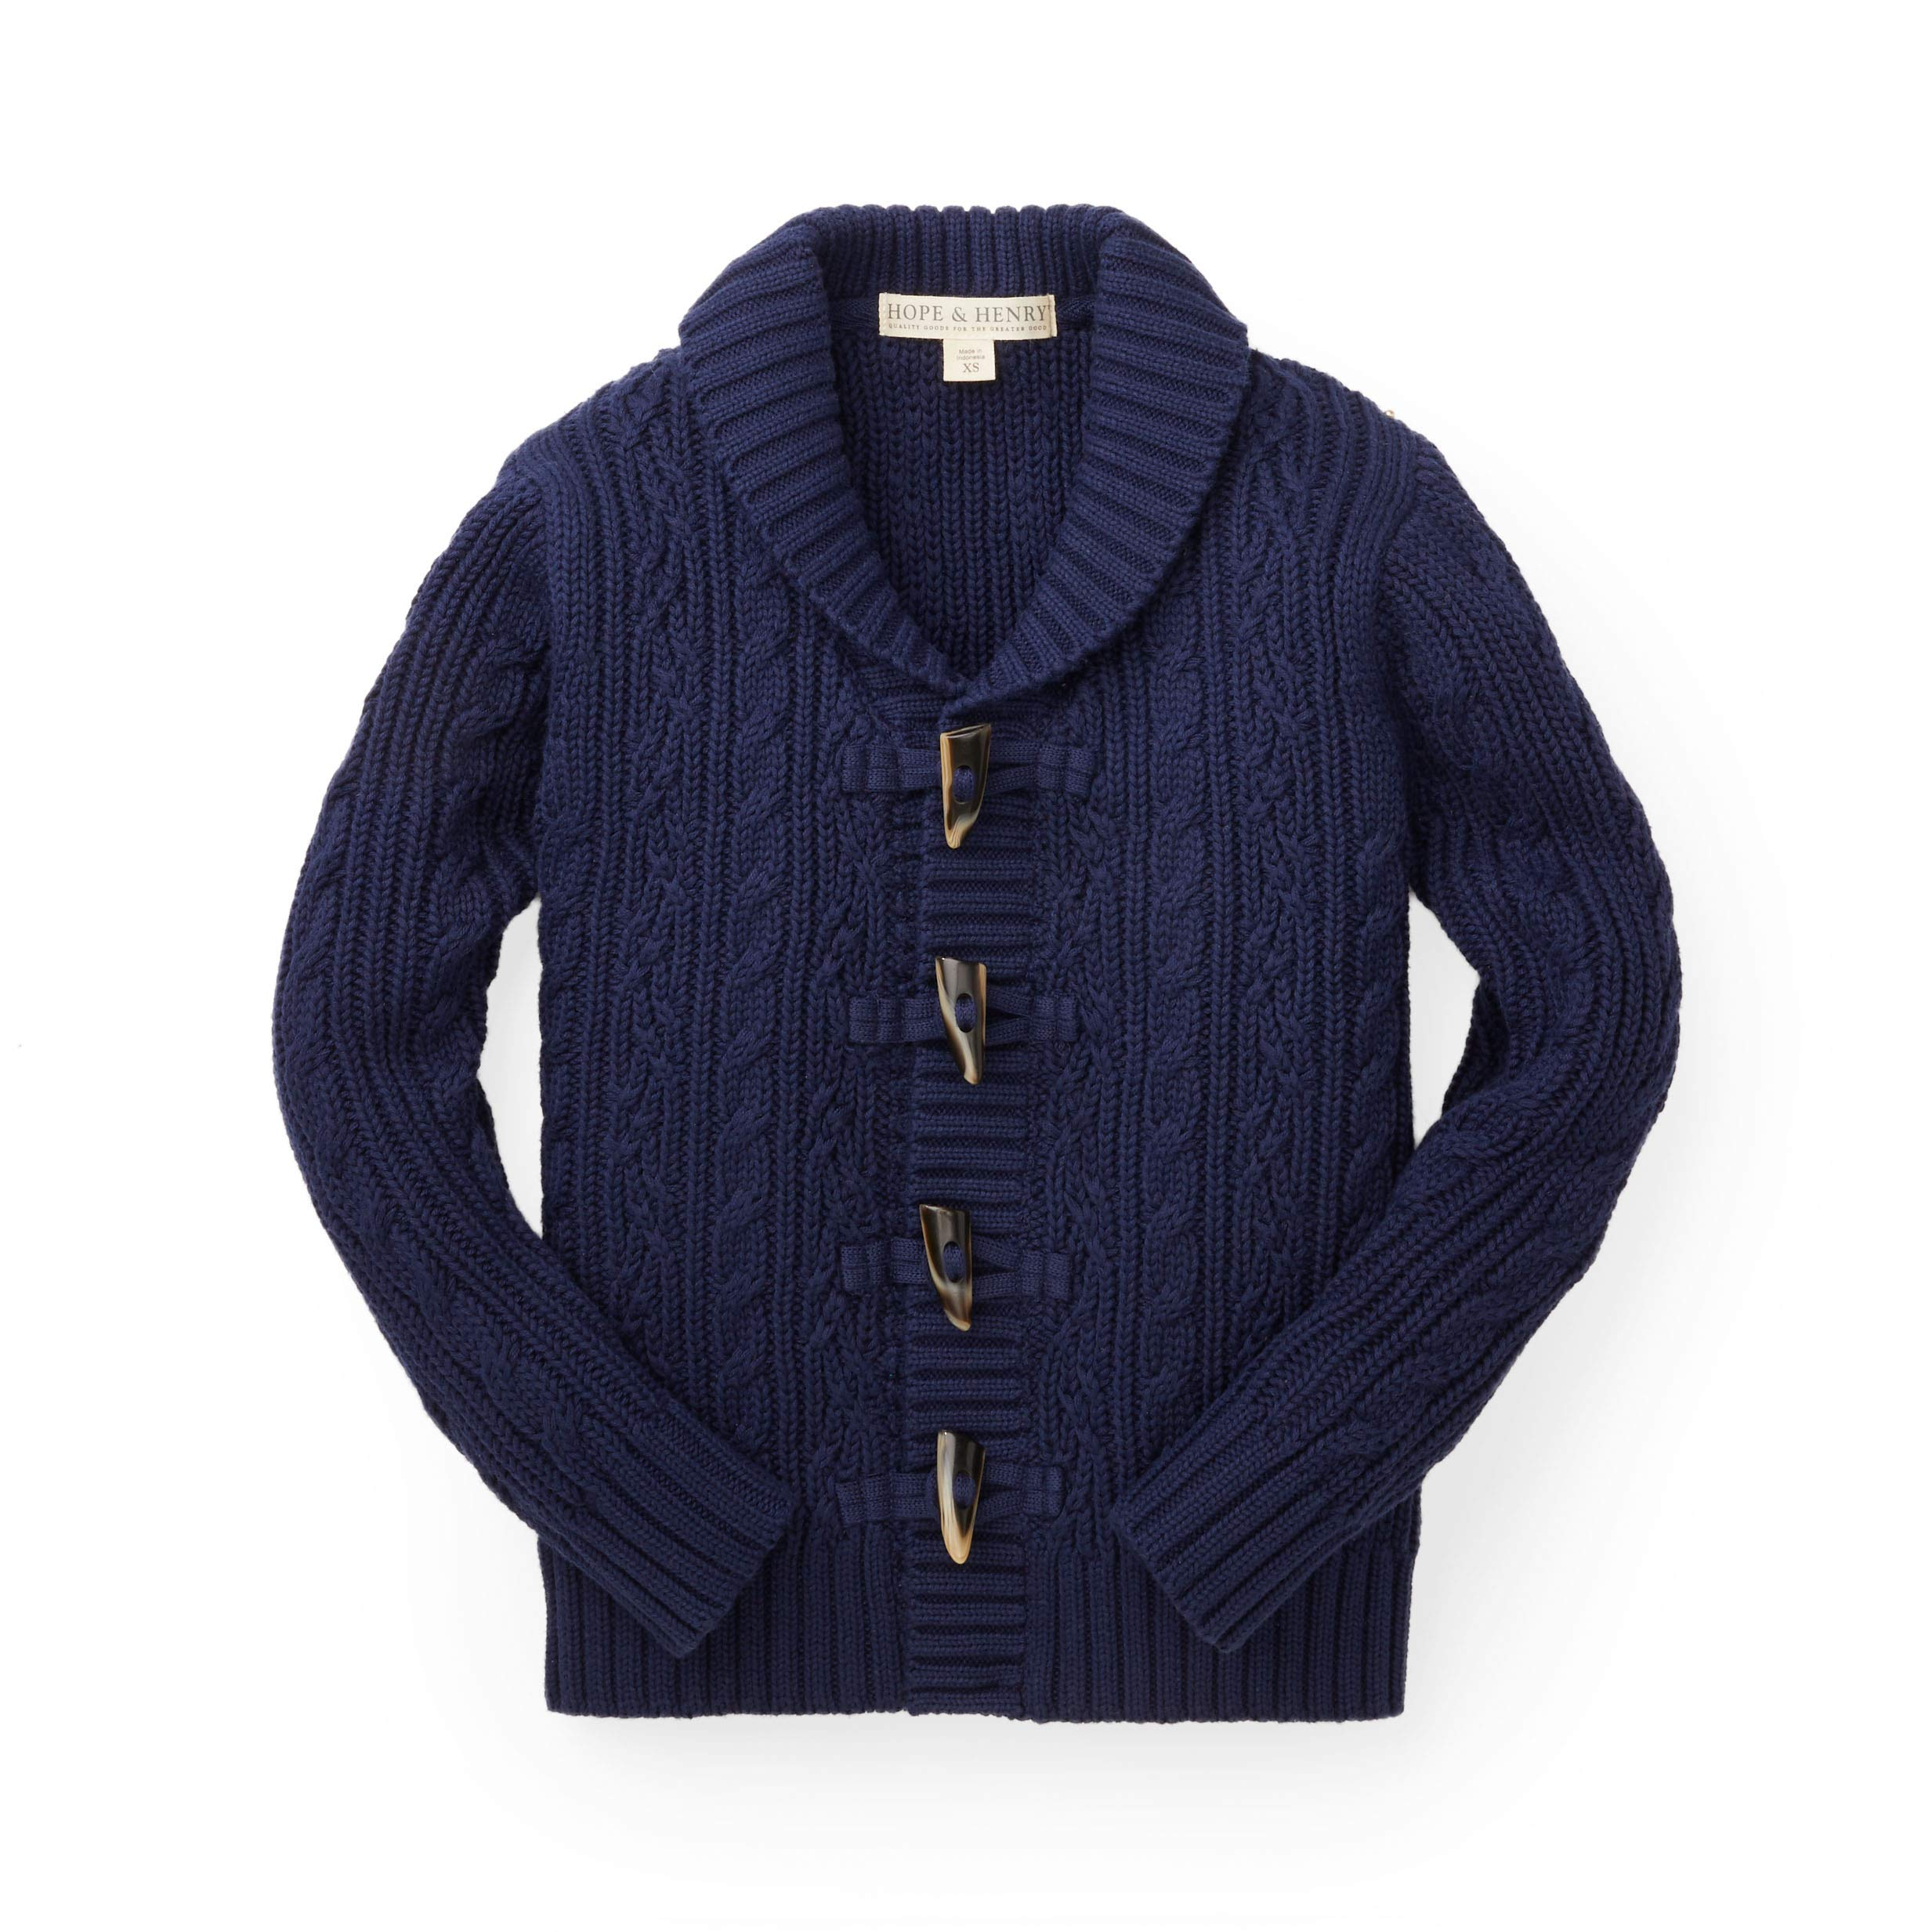 Hope & Henry Boys Navy Shawl Collar Cable Sweater by Hope & Henry (Image #1)